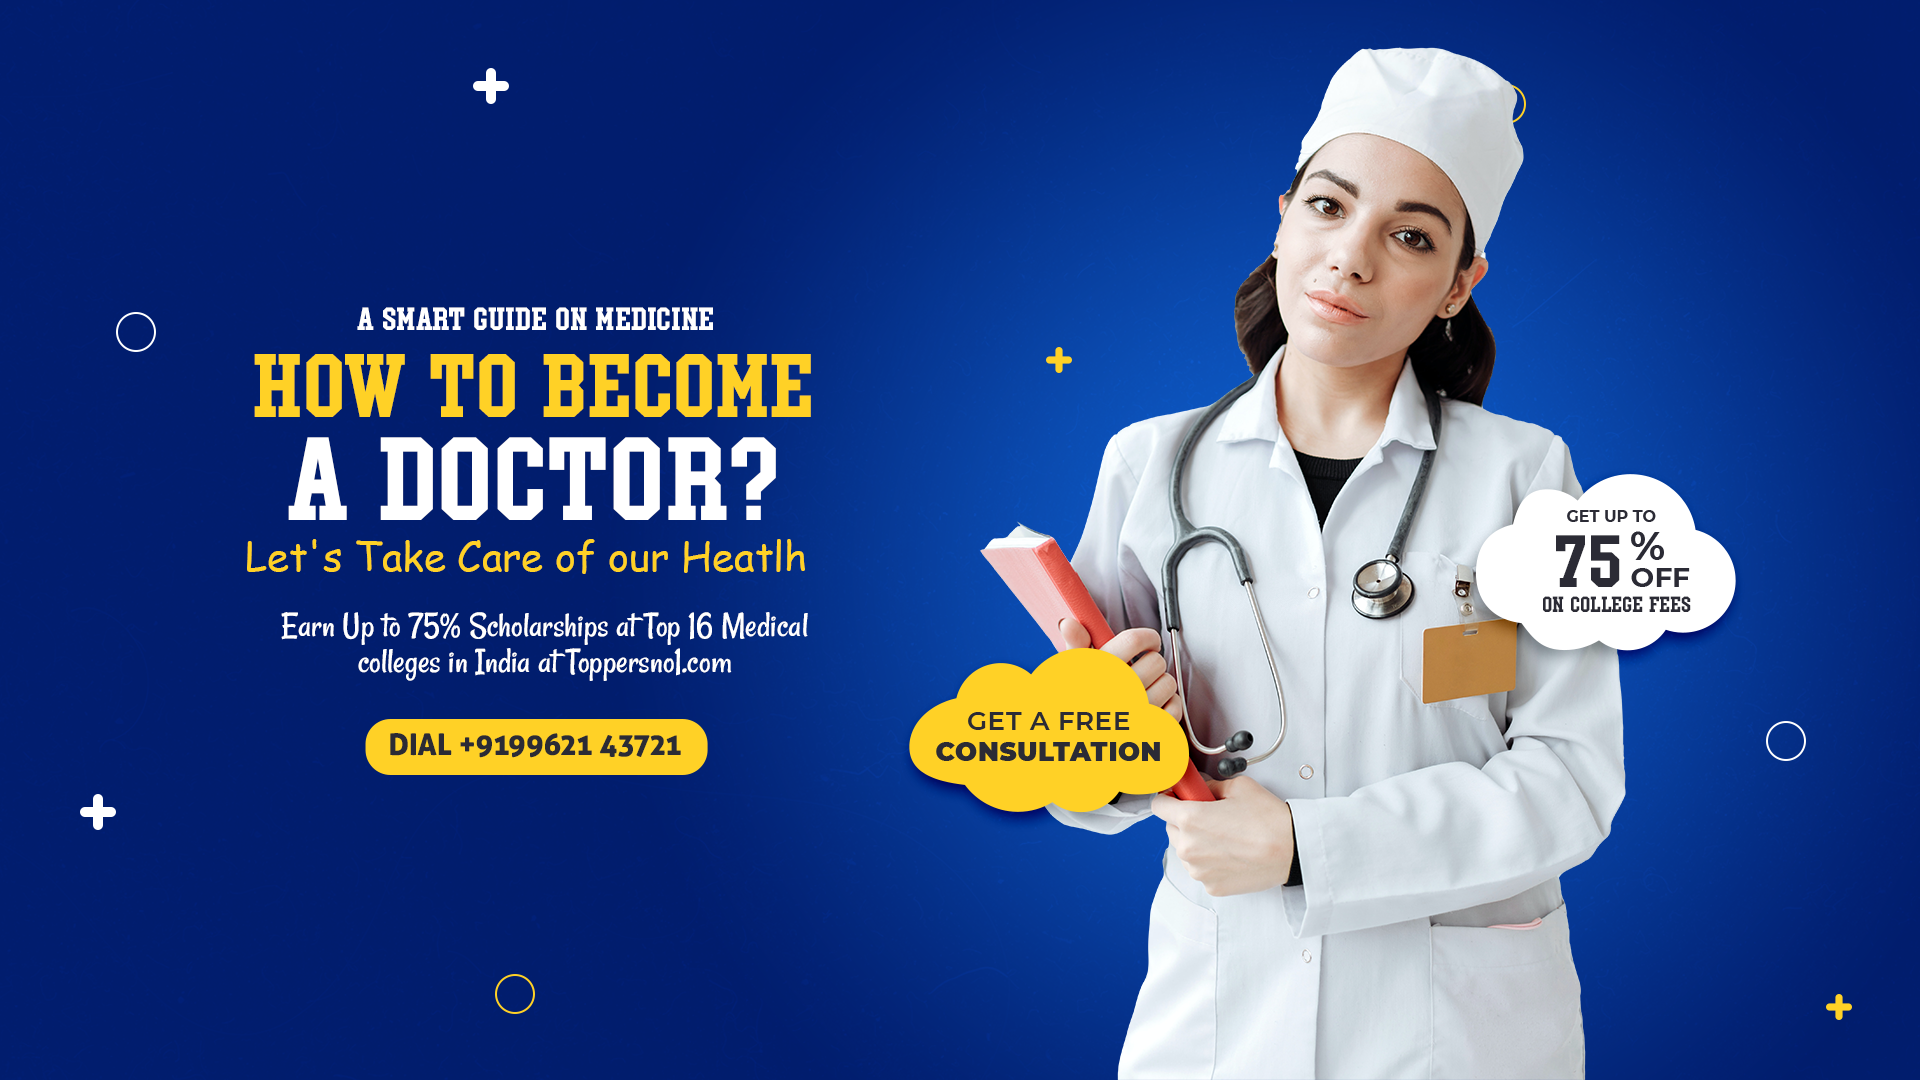 Smart guide to become a doctor